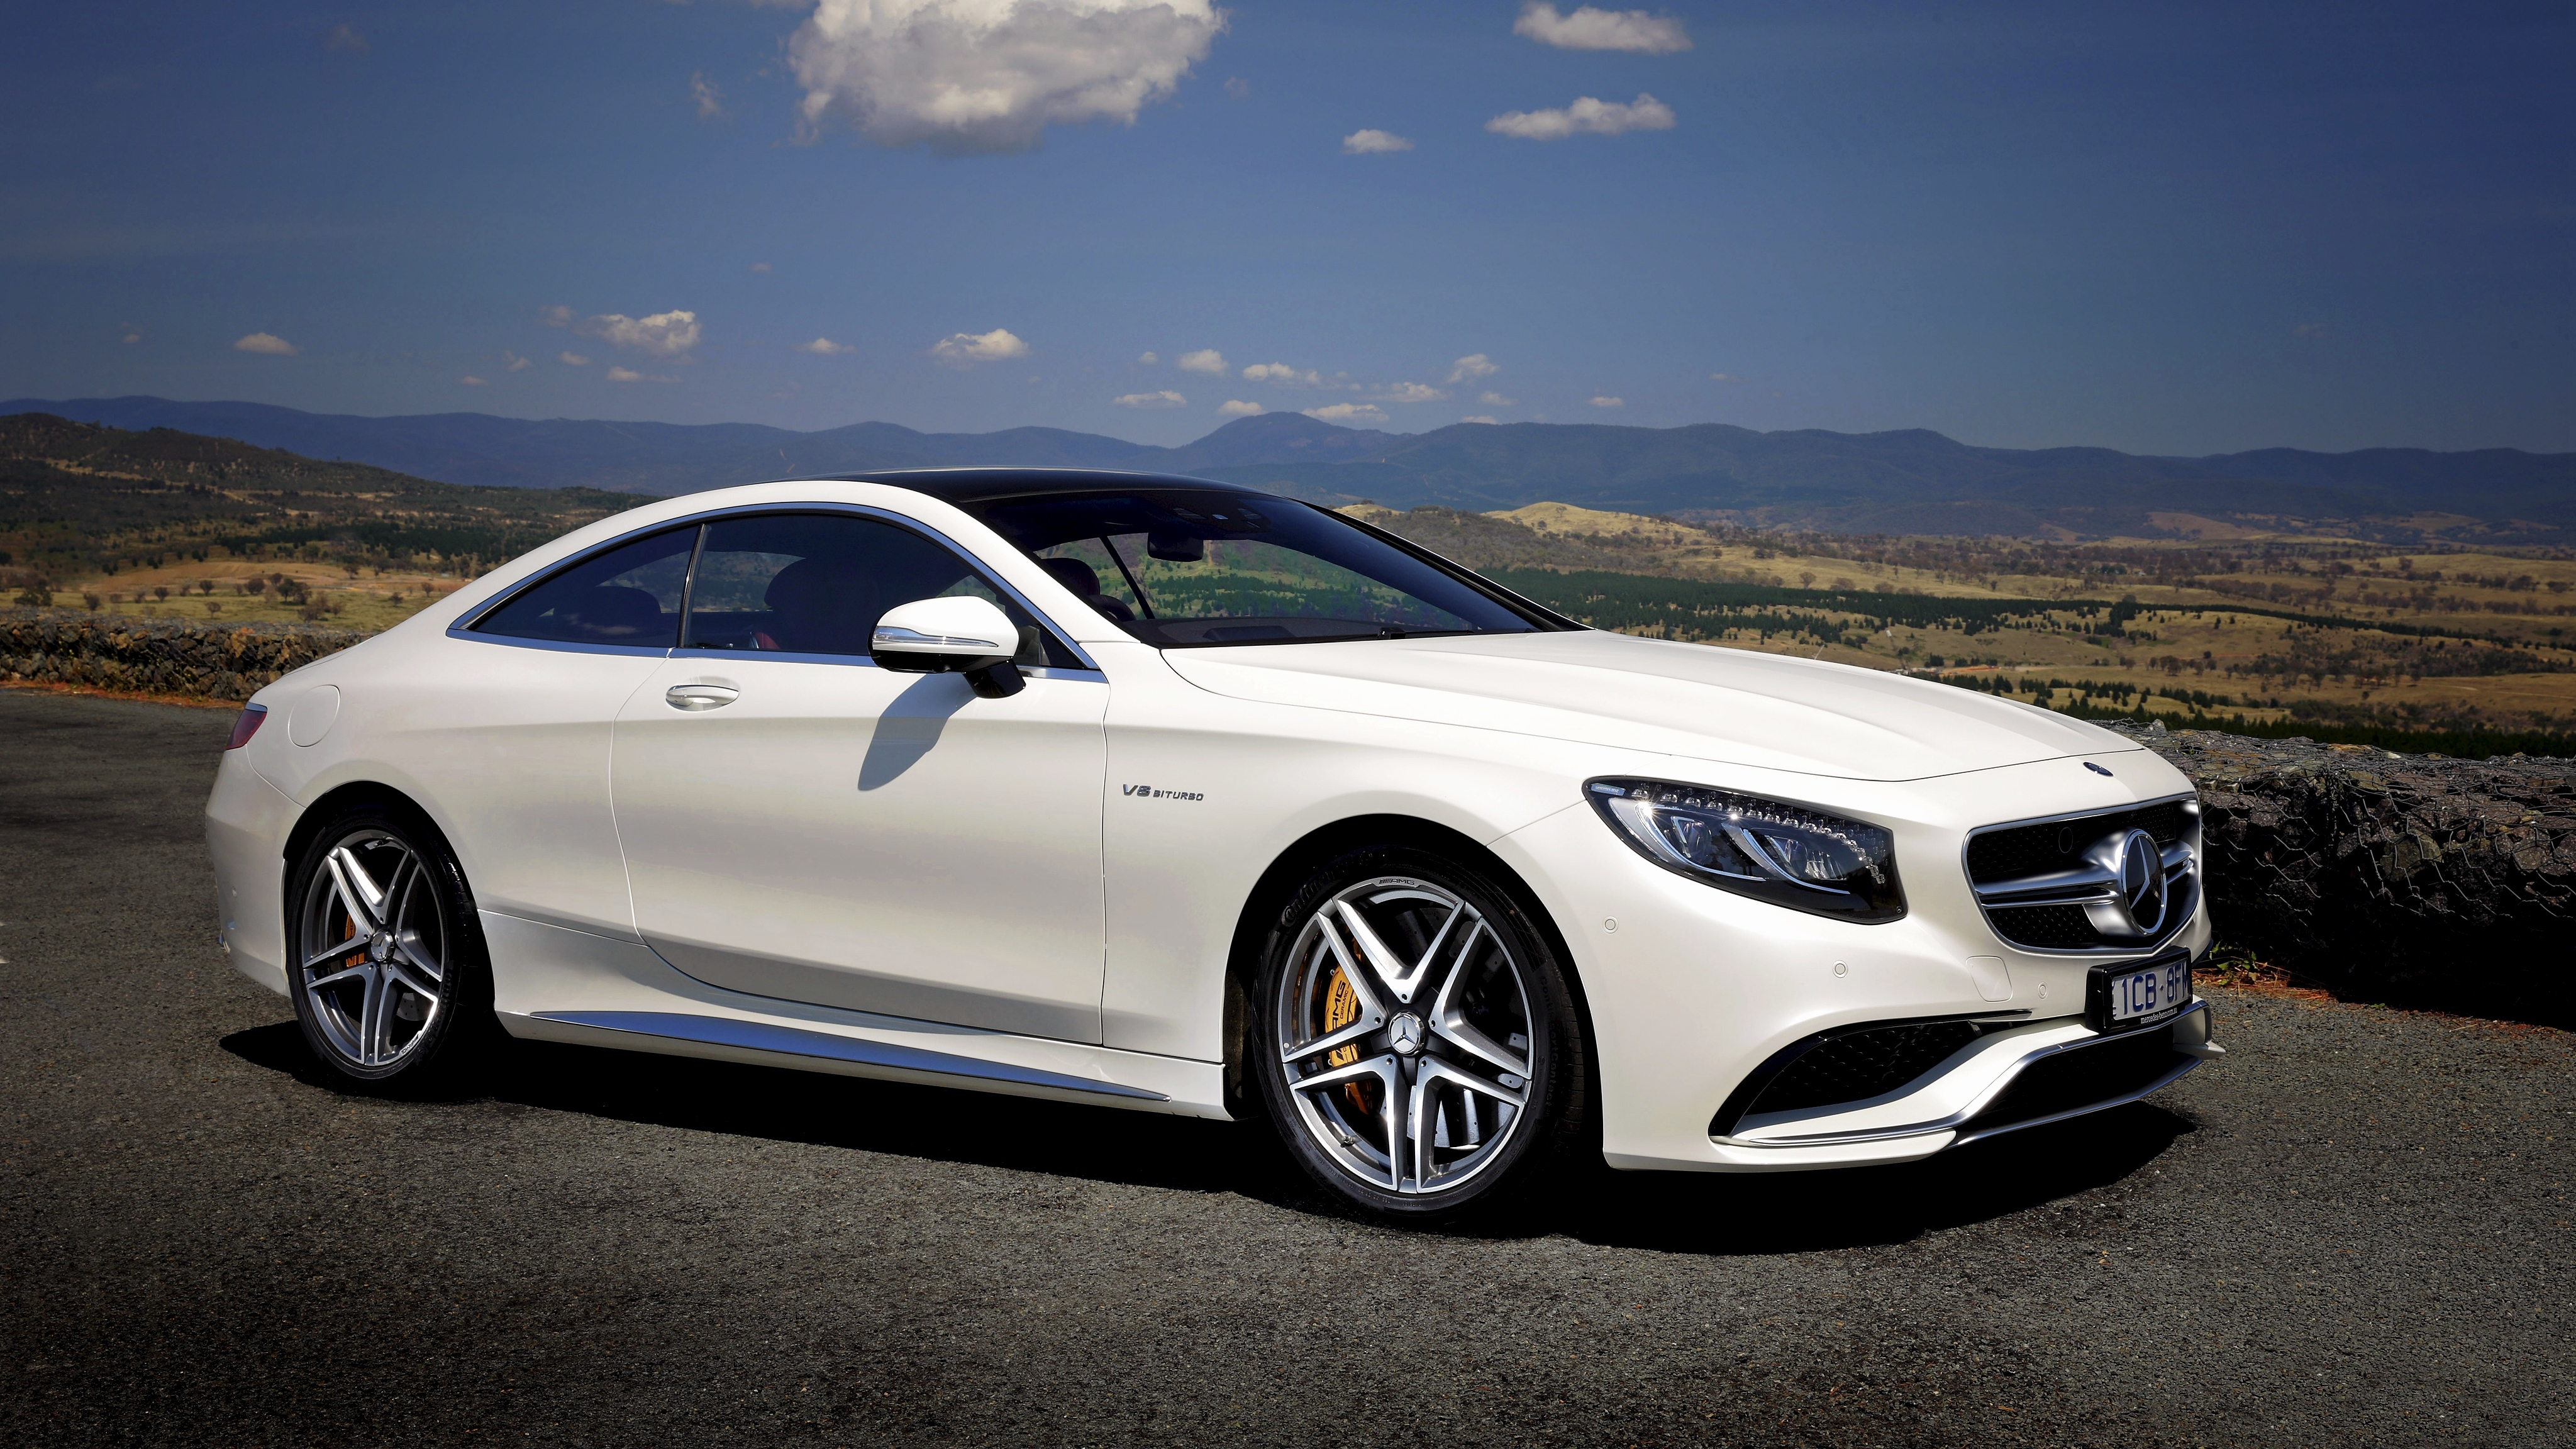 76688 download wallpaper Cars, Amg, Mercedes-Benz, Coupe, 2015, Au-Spec, S 63, C217 screensavers and pictures for free